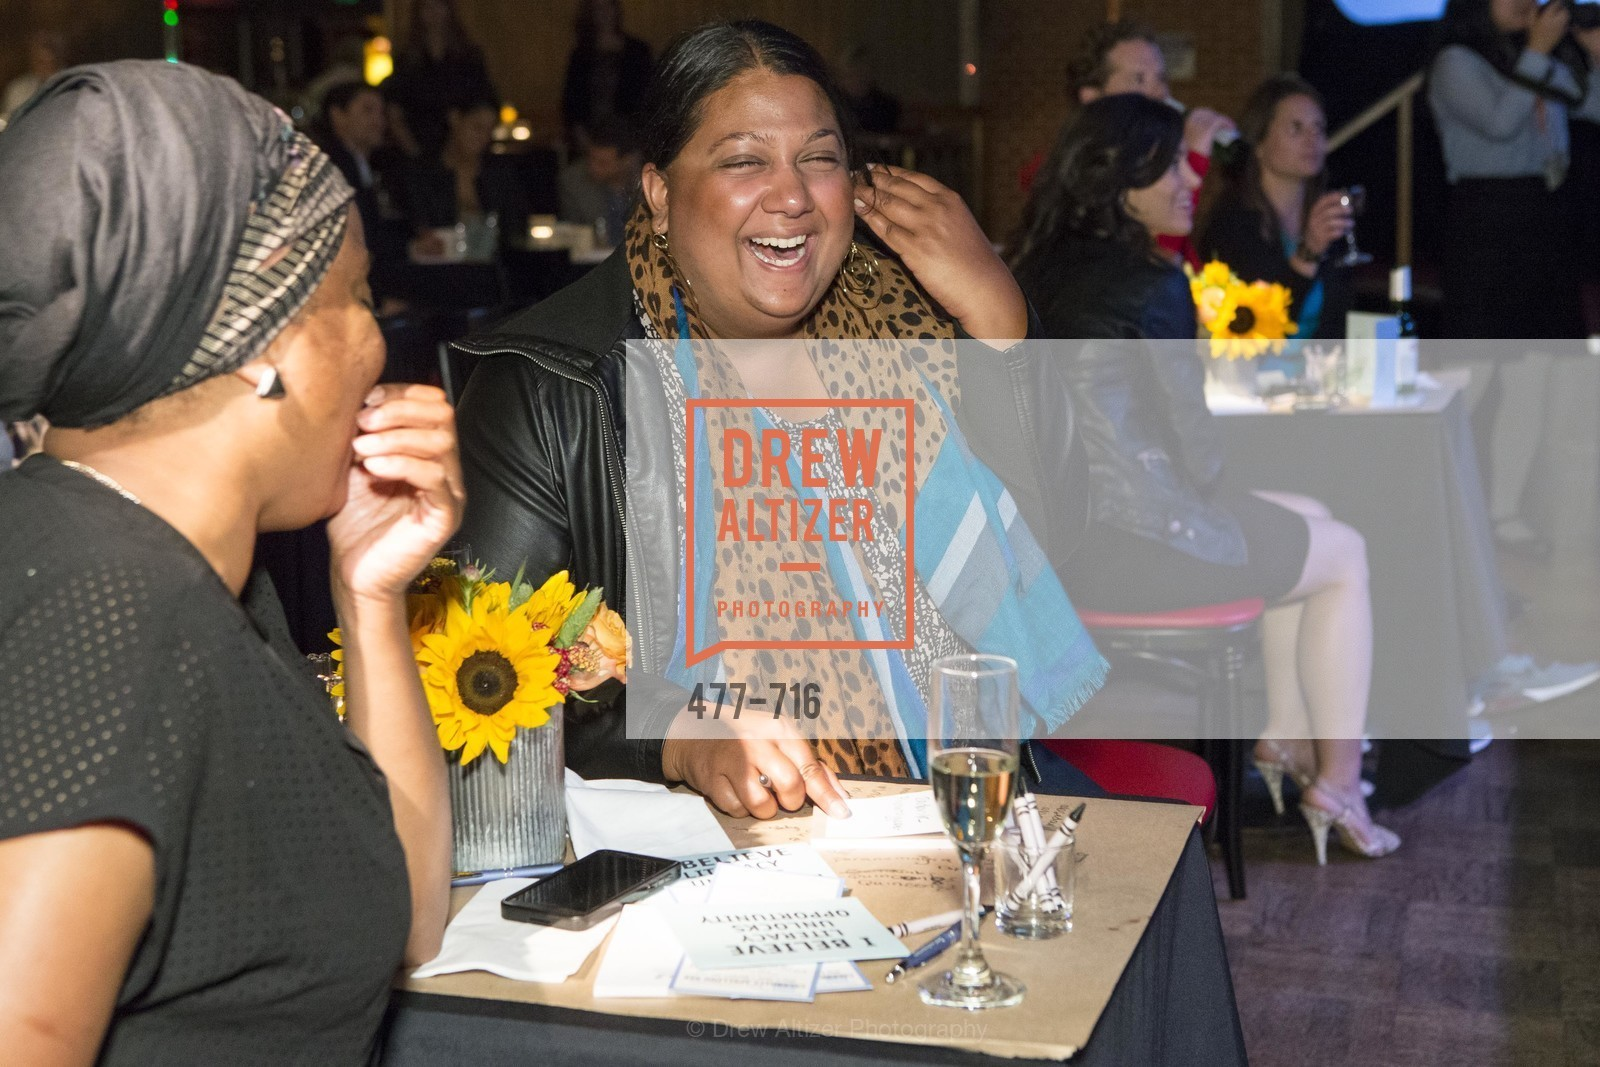 Leah Edun, READING PARTNERS BAY AREA Celebrity Spelling Bee, US, May 9th, 2015,Drew Altizer, Drew Altizer Photography, full-service event agency, private events, San Francisco photographer, photographer California